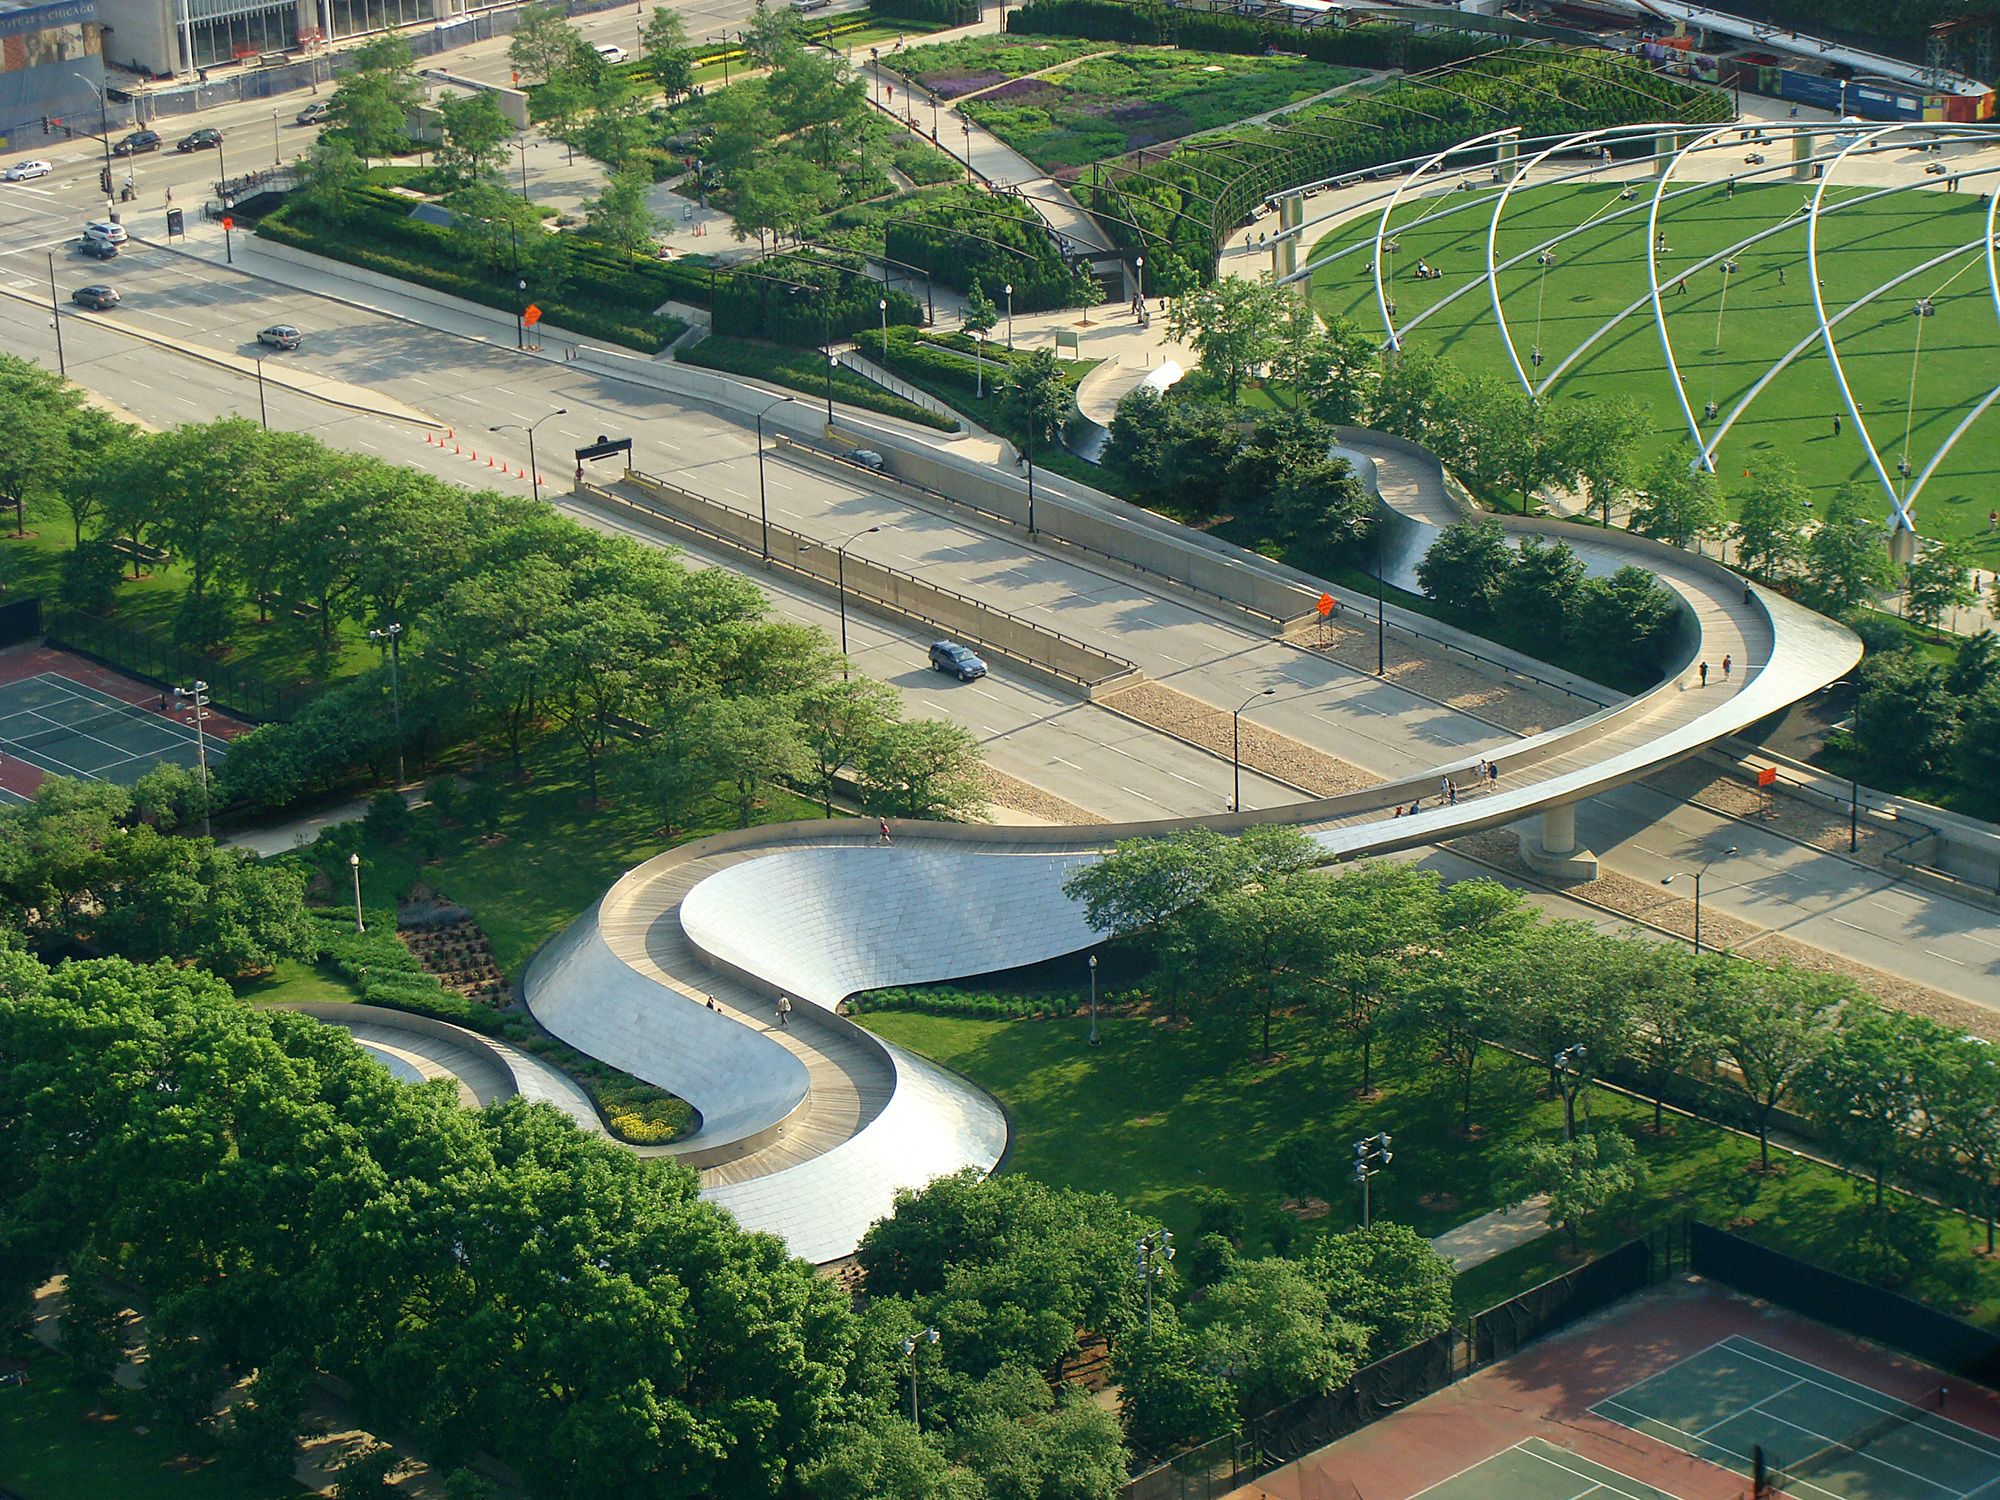 The serpentine form of the BG bridge echoes the smooth curves of nearby Pritzker Pavillion (seen upper right).